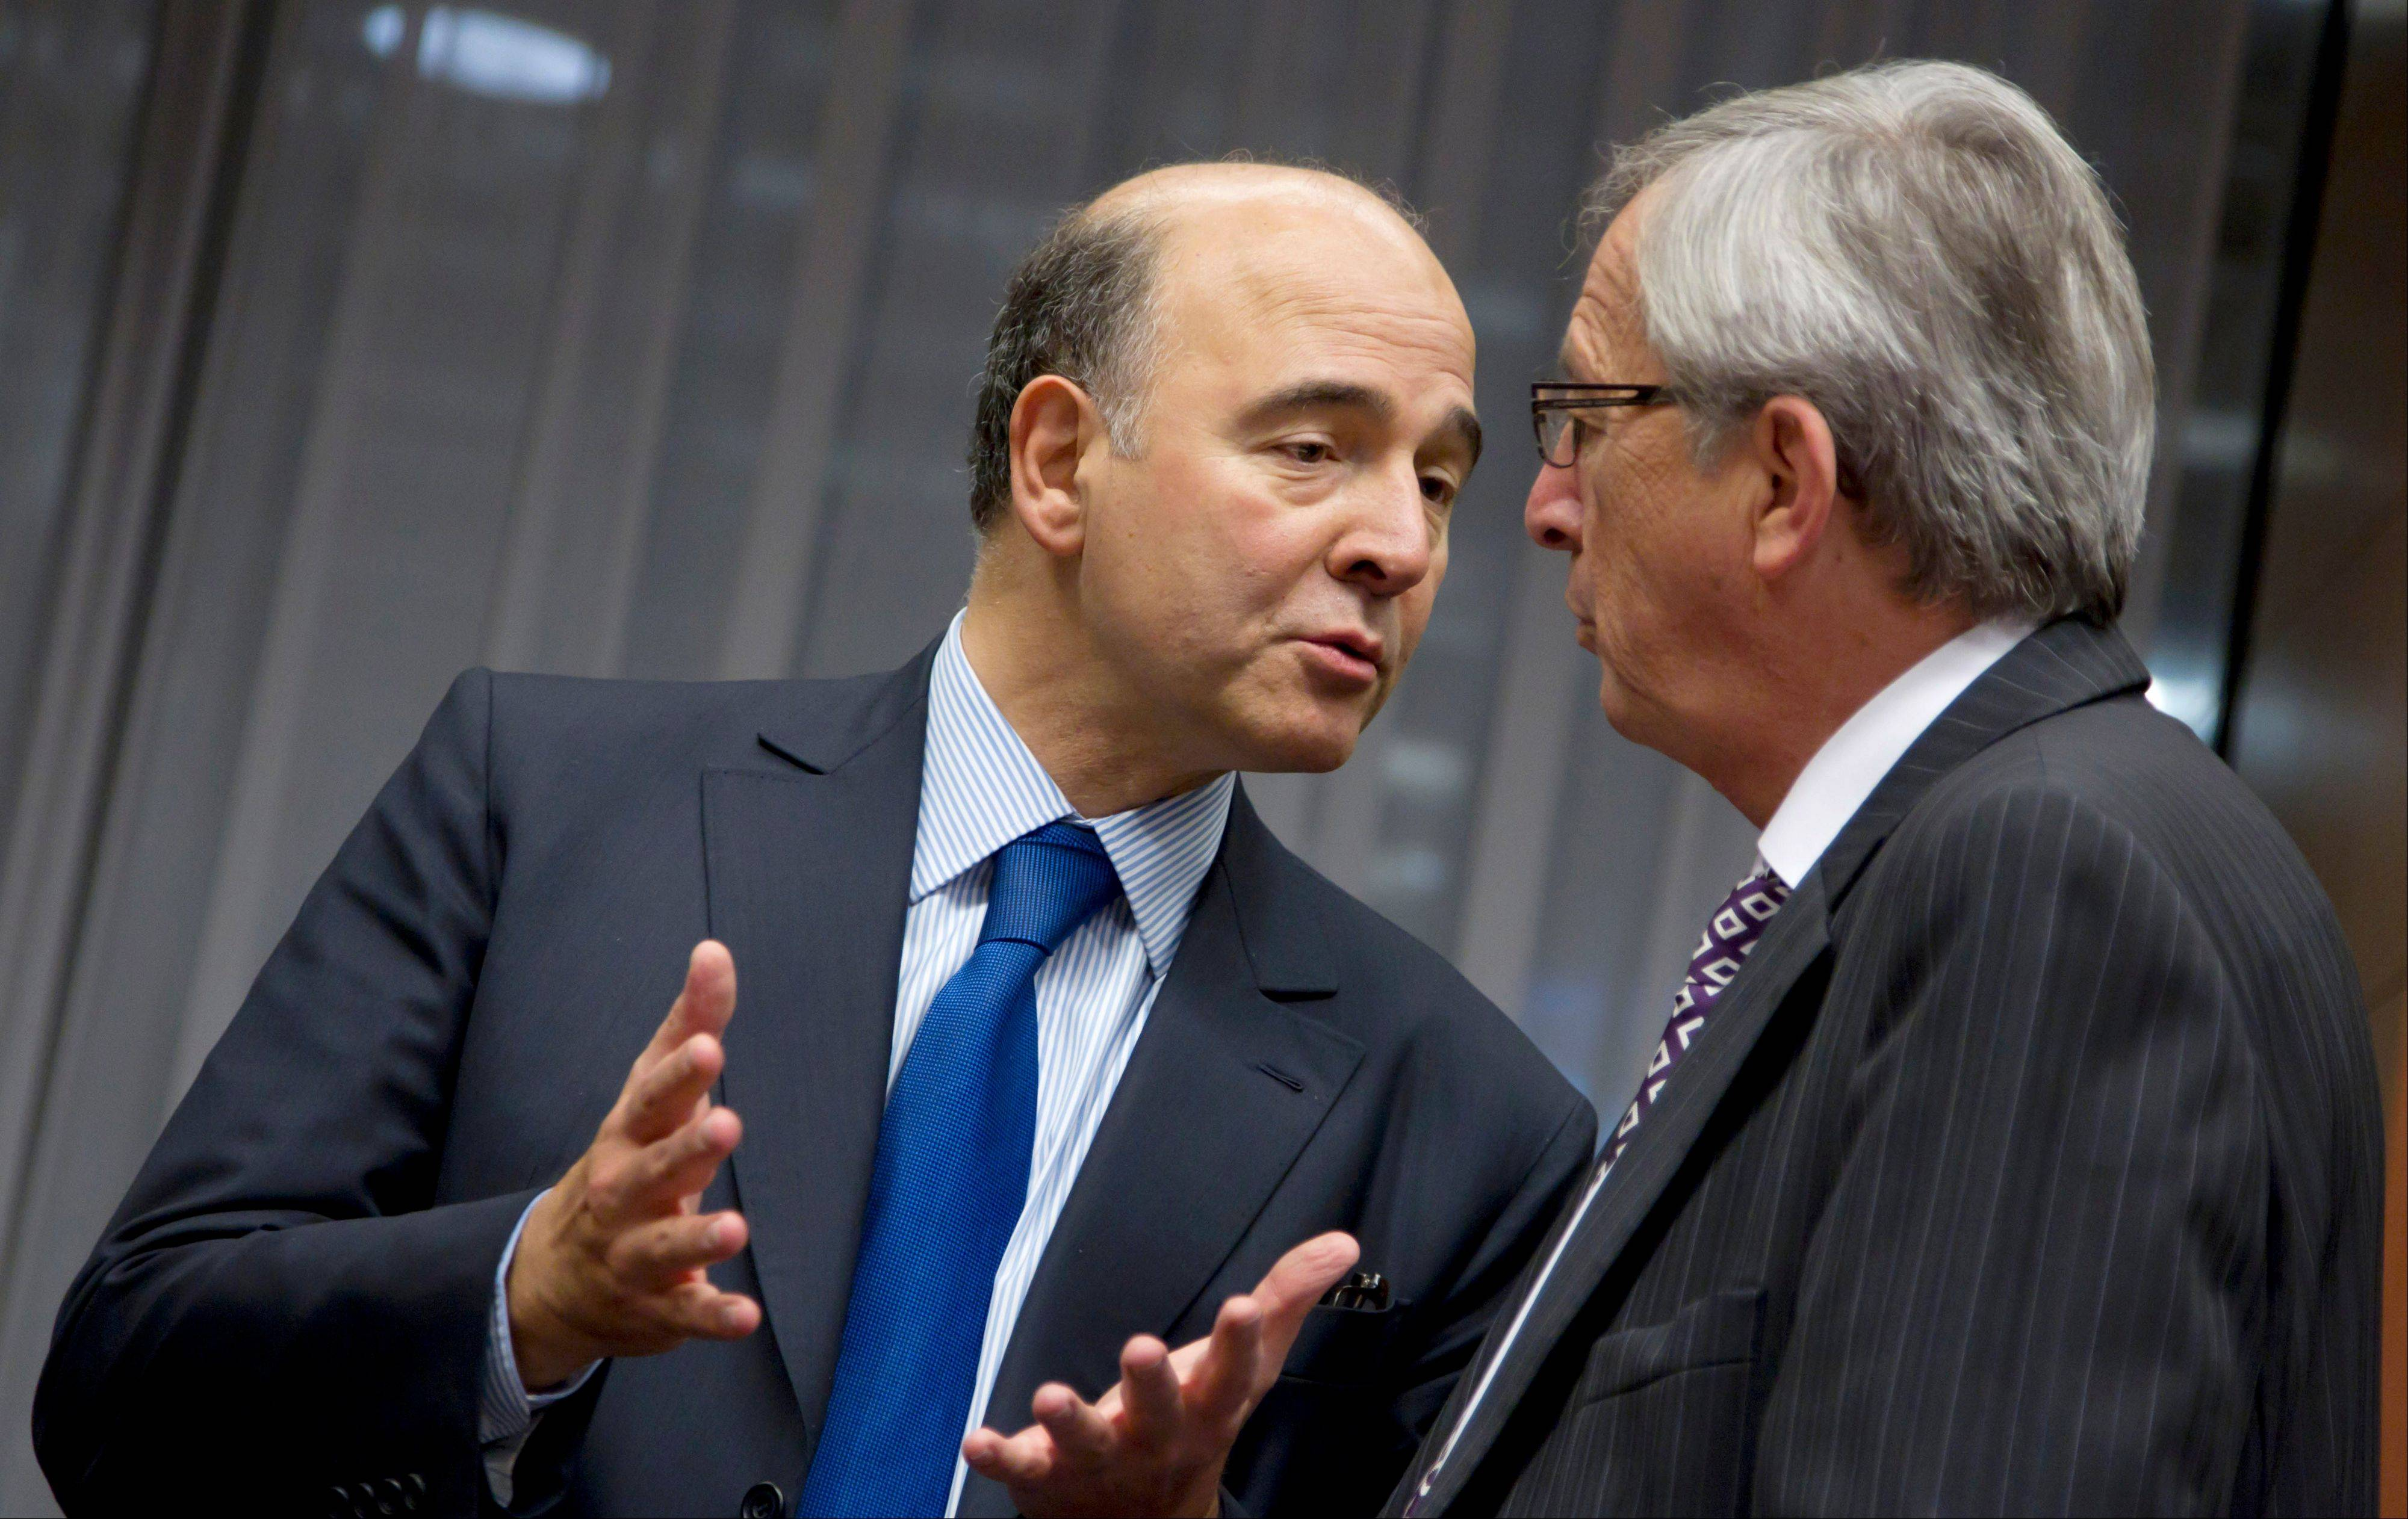 Luxembourg�s Prime Minister Jean-Claude Juncker, right, speaks with French Finance Minister Pierre Moscovici during a meeting of eurogroup finance ministers in Brussels.